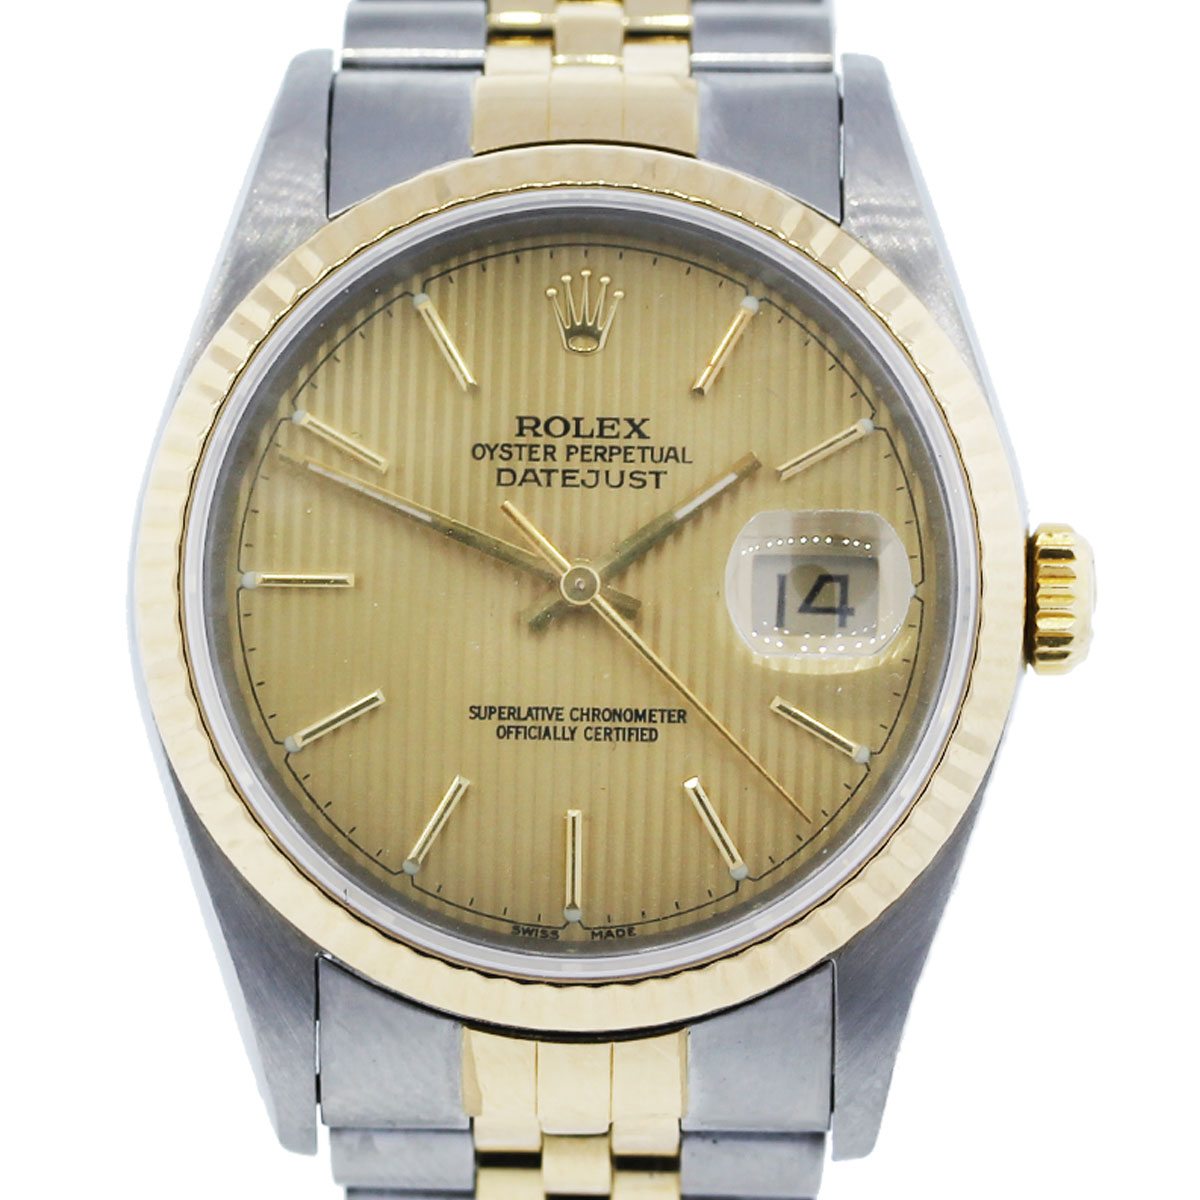 You are viewing this Rolex Datejust 16233 TT Gold Pin Stripe Dial Jubilee Watch!